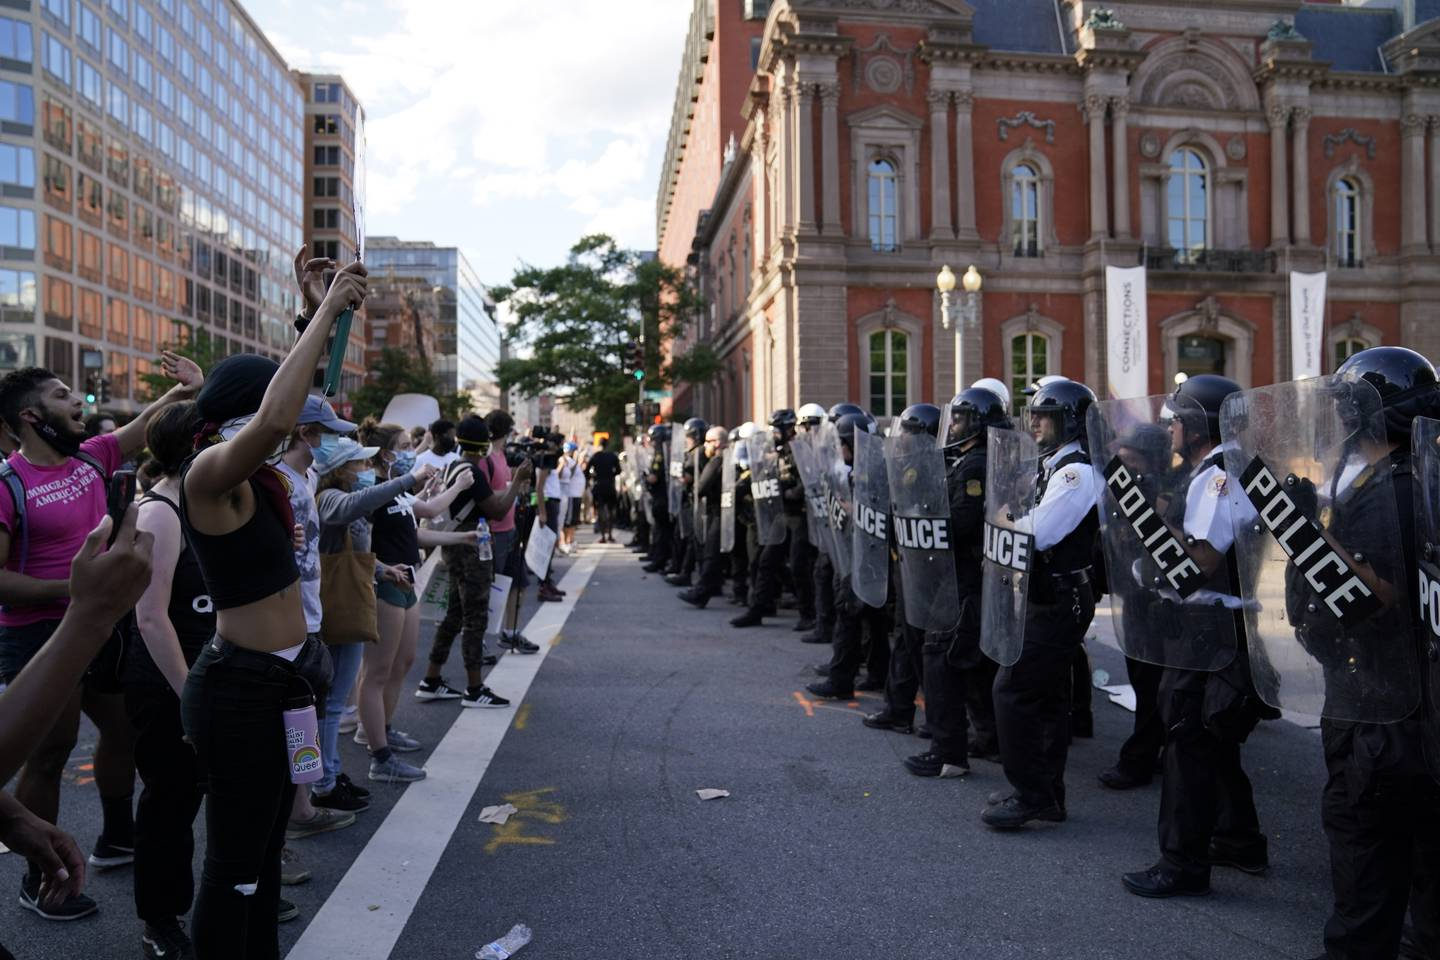 Demonstrators vent to police in riot gear as they protest the death of George Floyd, Saturday, May 30, 2020, near the White House in Washington. Floyd died after being restrained by Minneapolis police officers.